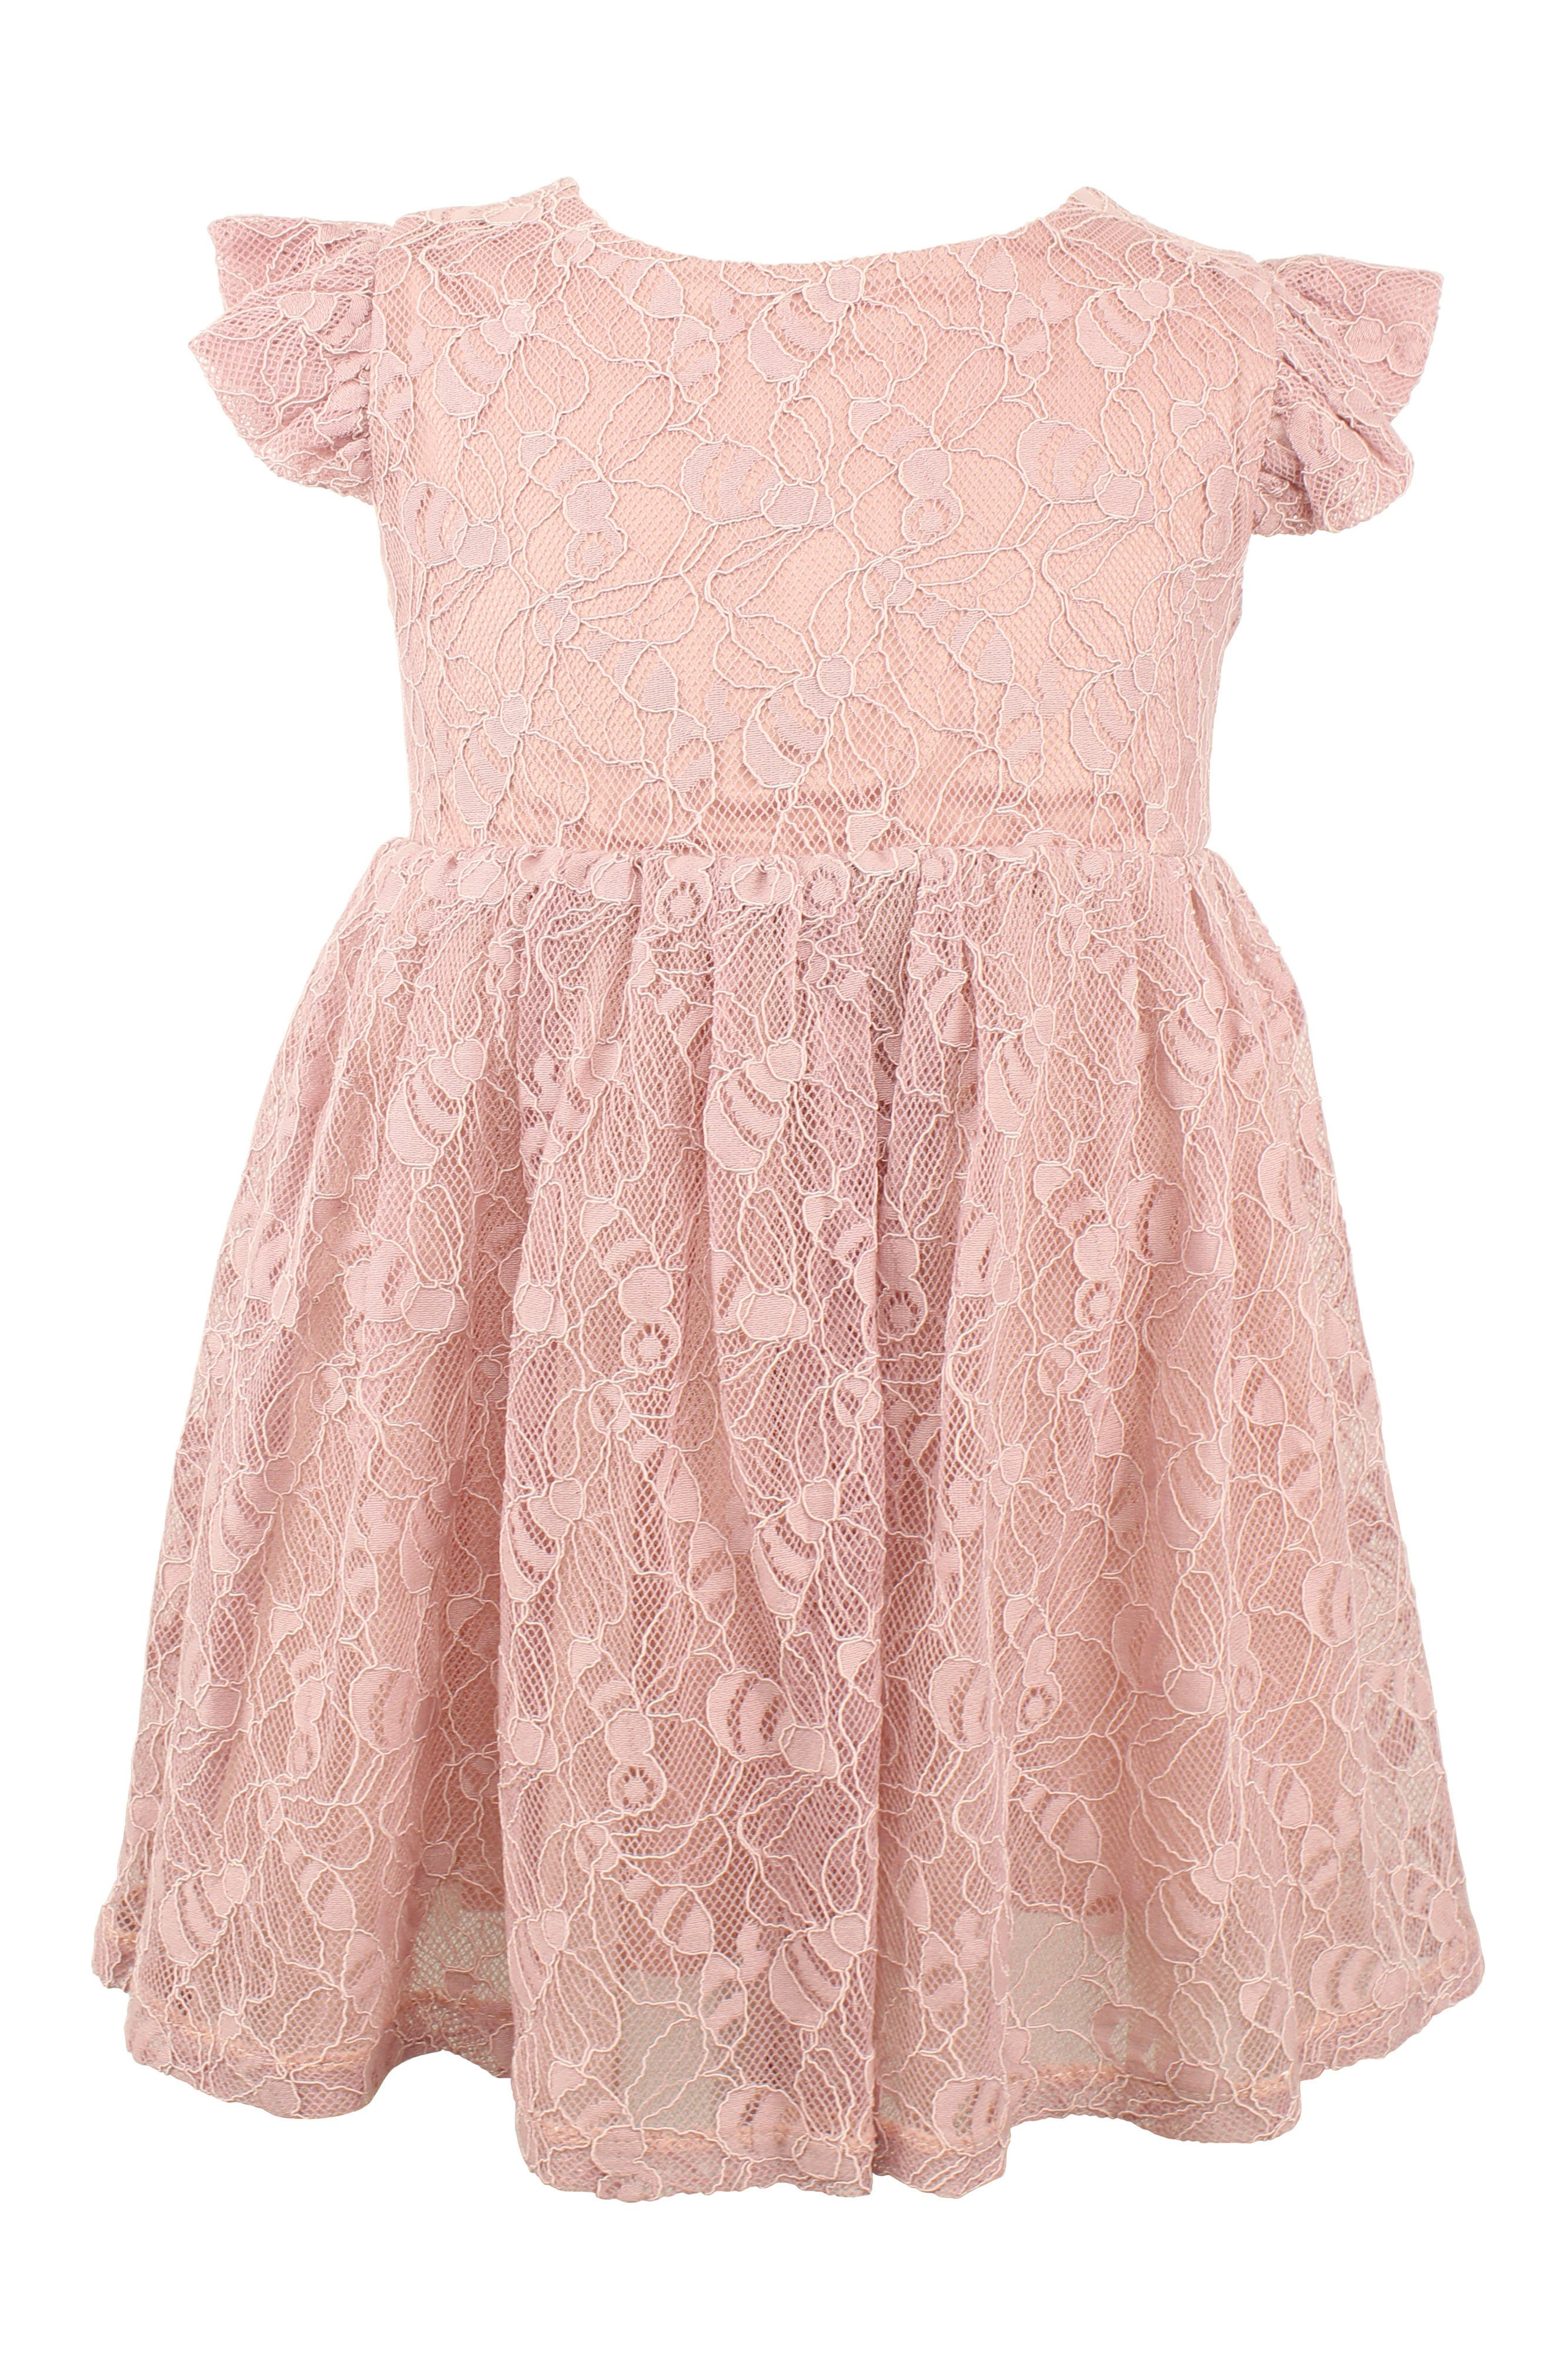 Victorian Kids Costumes & Shoes- Girls, Boys, Baby, Toddler Infant Girls Popatu Lace Overlay Flutter Dress $42.00 AT vintagedancer.com